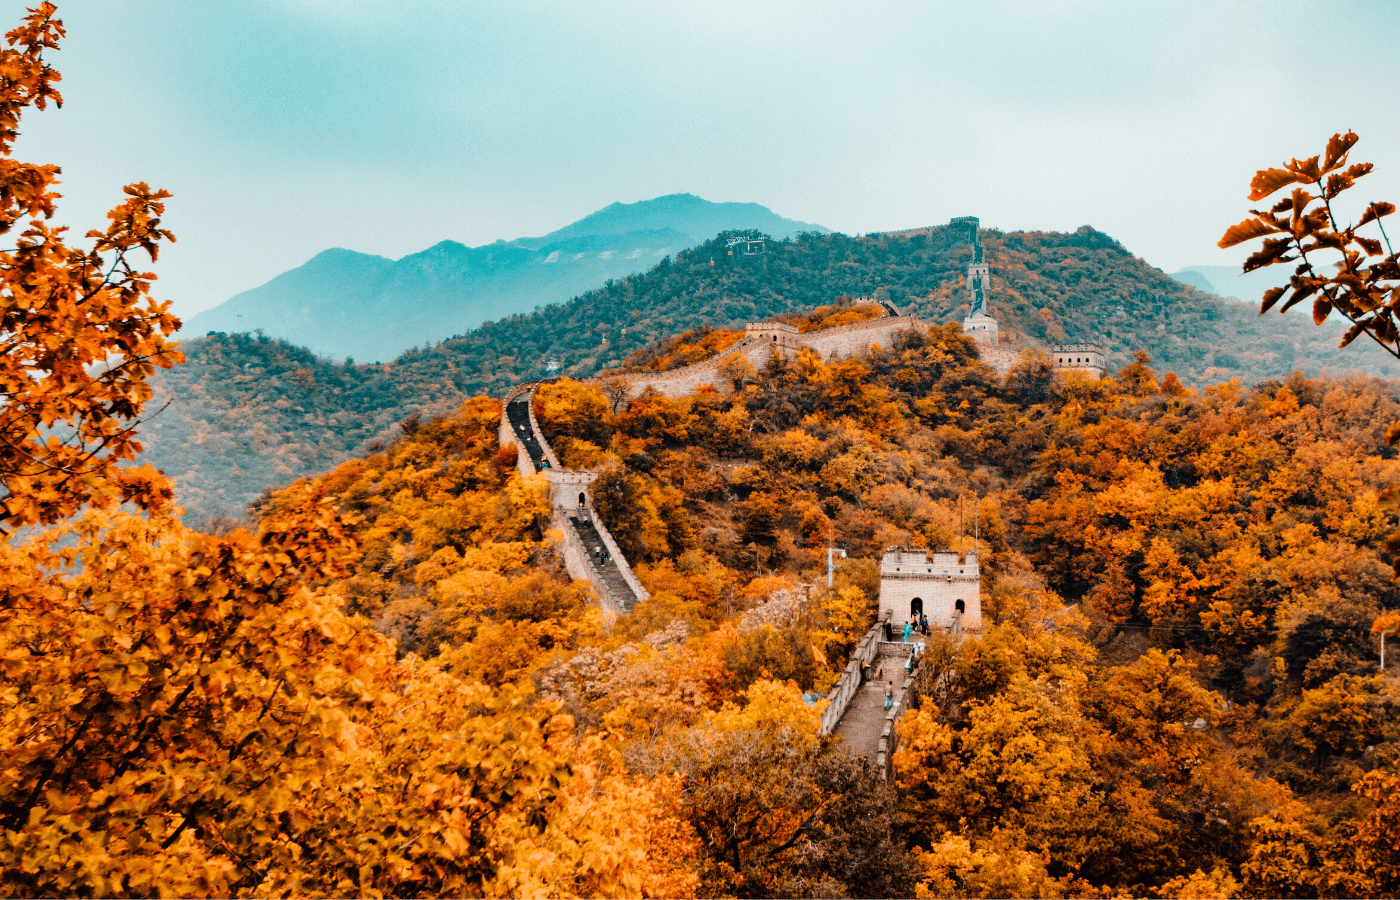 great wall of china virtual tour | things to do online